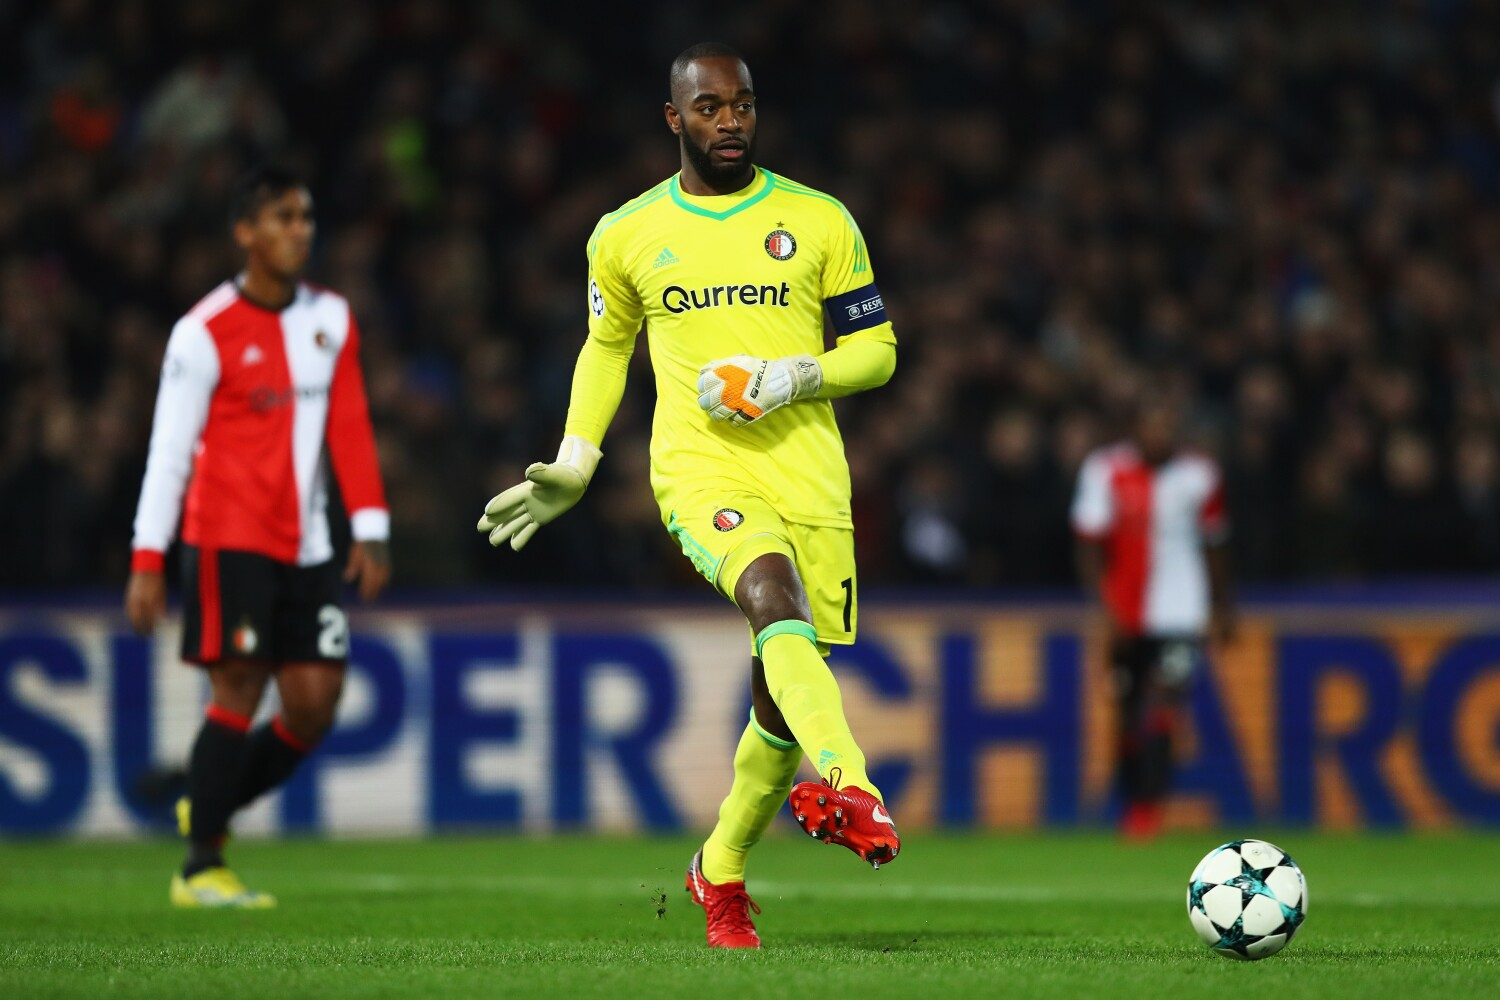 Newcomer Kenneth Vermeer made a tough choice and could fill a huge void for LAFC